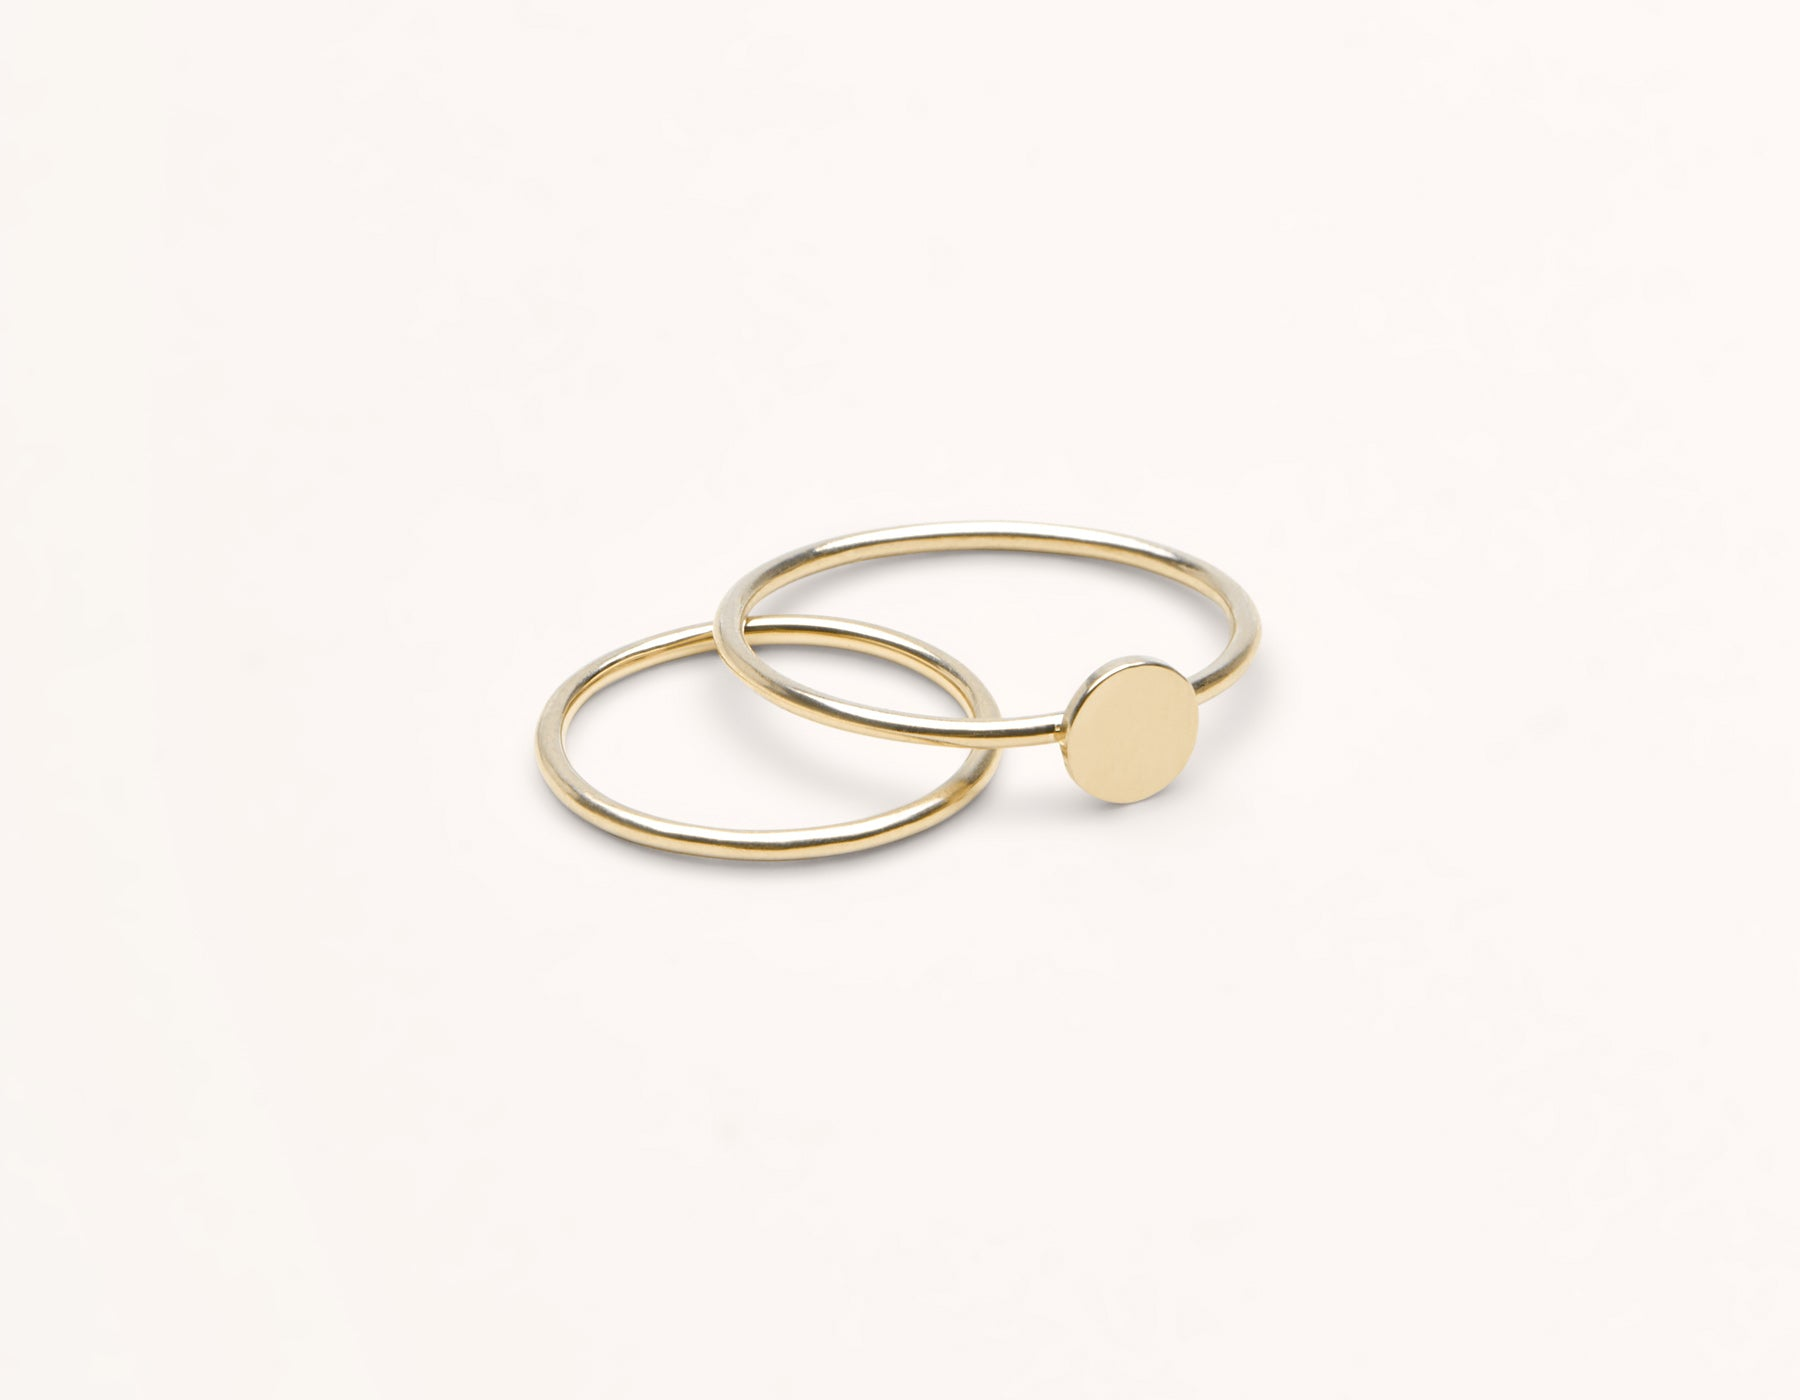 Personalized Initial Ring 14k solid gold simple disk simple skinny ring Vrai & Oro, 14K Yellow Gold